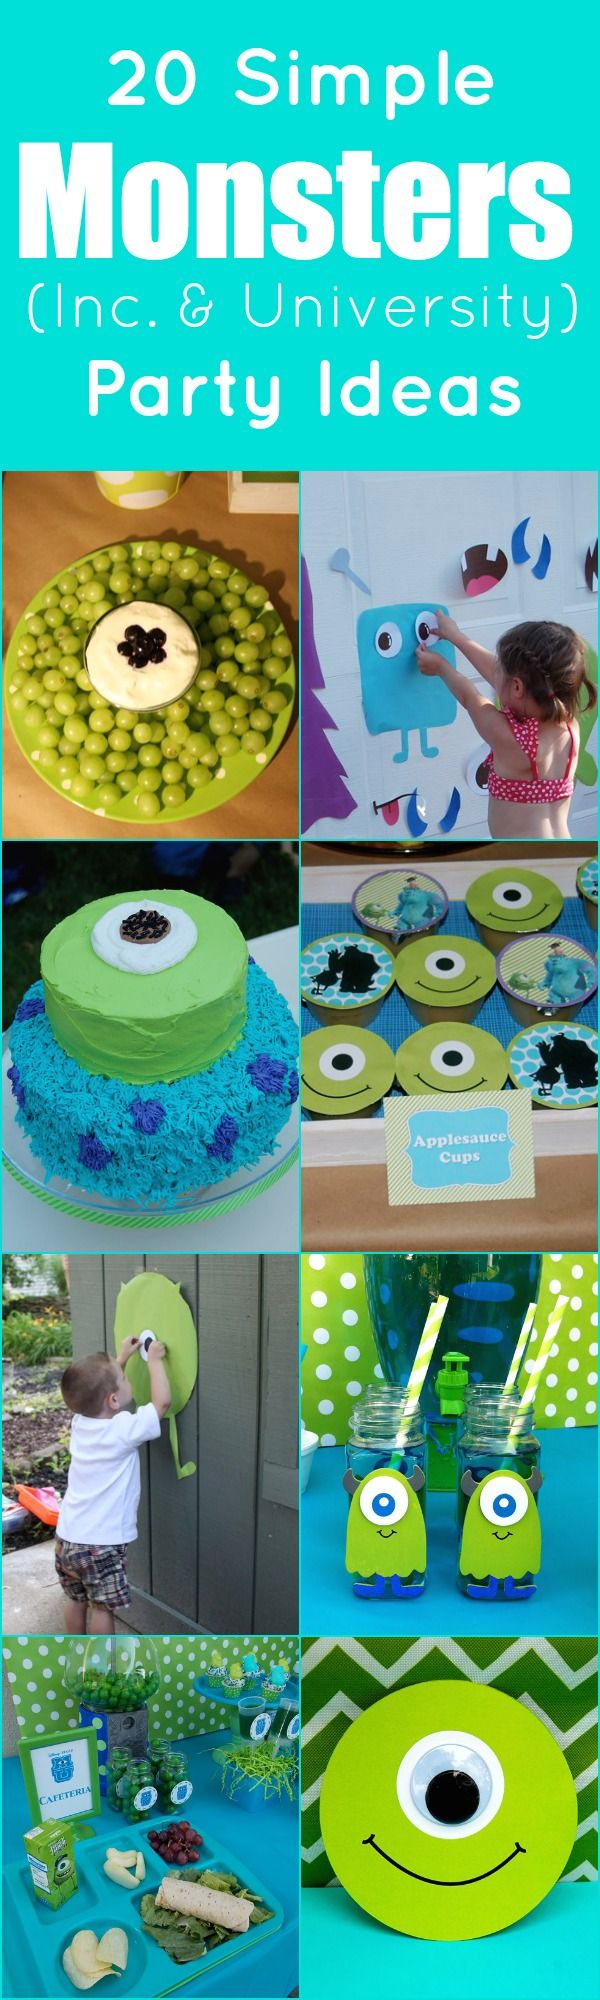 20 Simple Monsters Inc and University Party Ideas | Kids Birthday ...